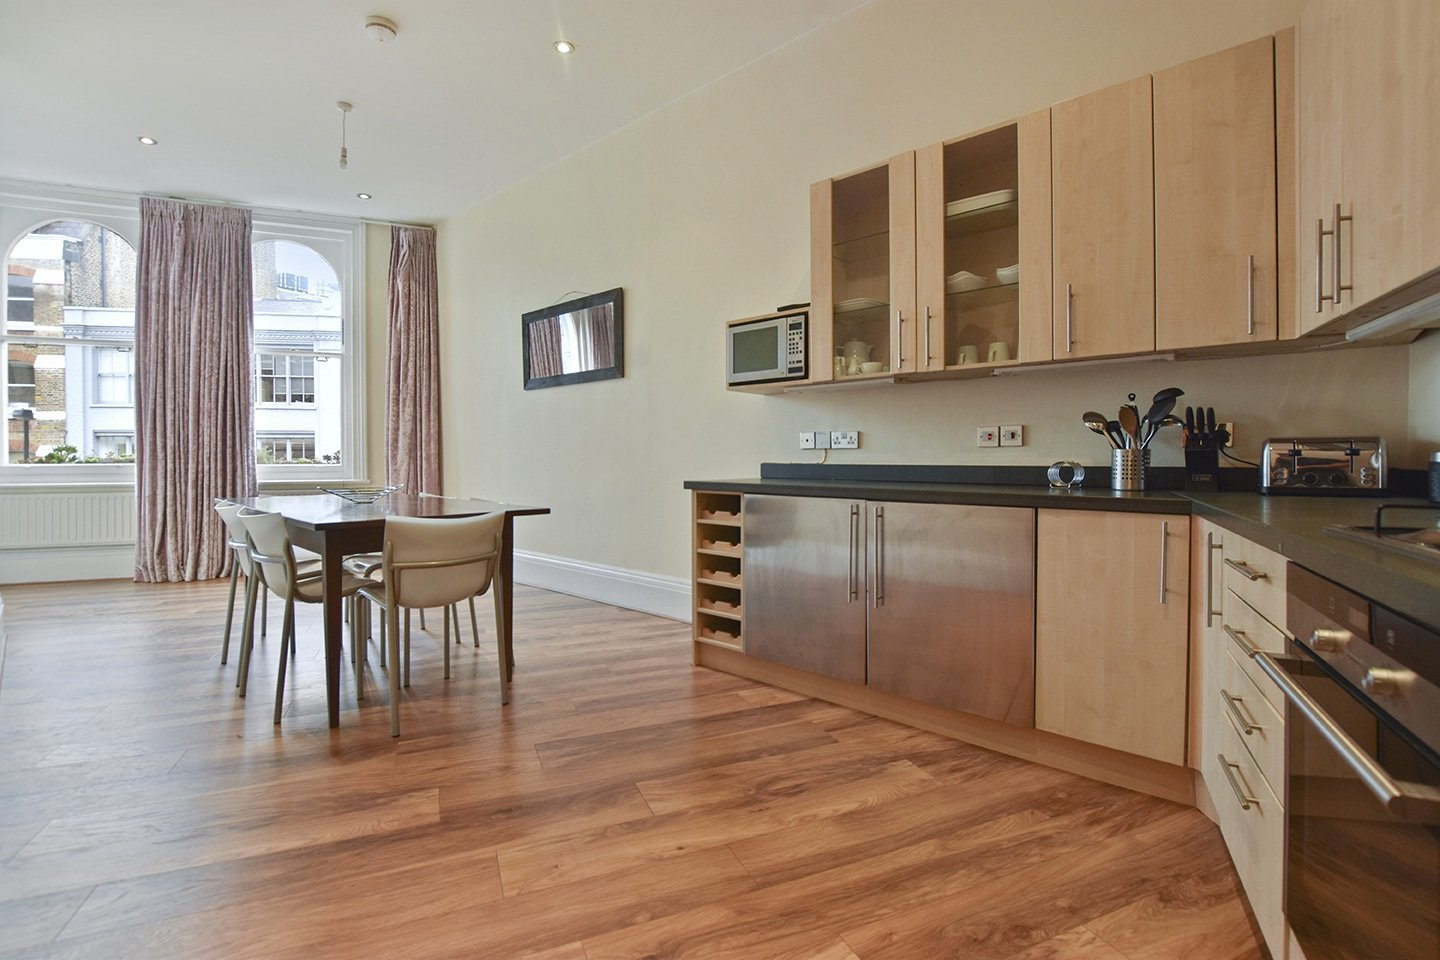 Serviced-Accommodation-London-City---St-John's-Street-Apartments-|-Book-Serviced-Apartments-near-Farringdon-&-Barbican-now.-Best-Rates---No-Fees---Free-Wifi